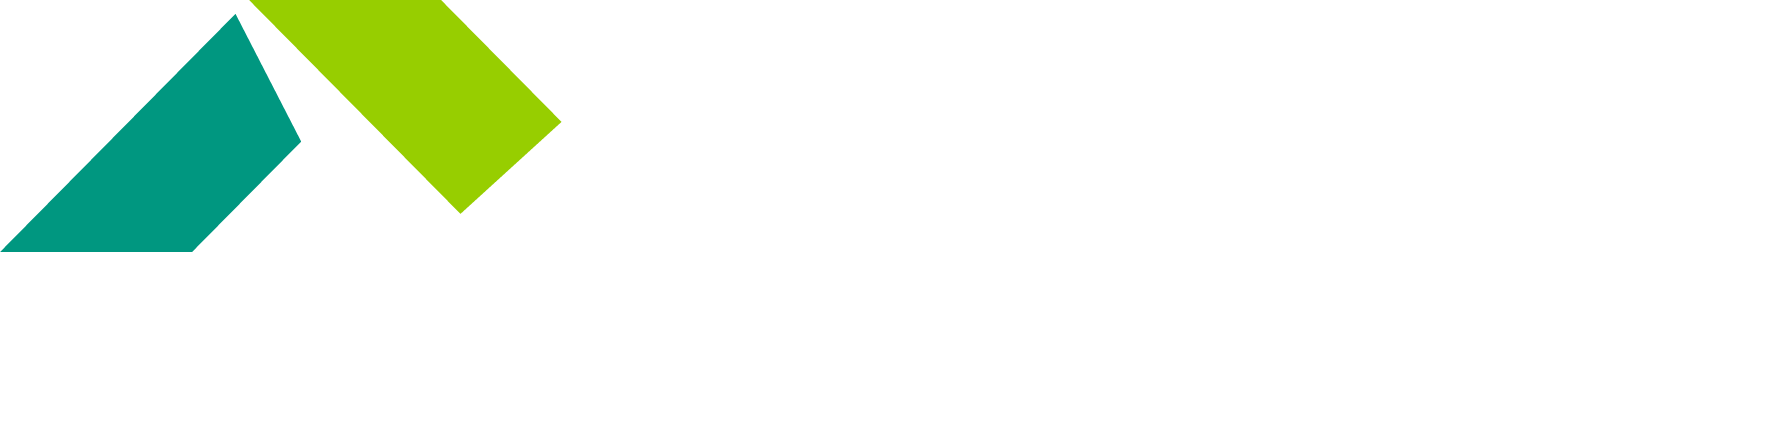 Temporary Housing Directory